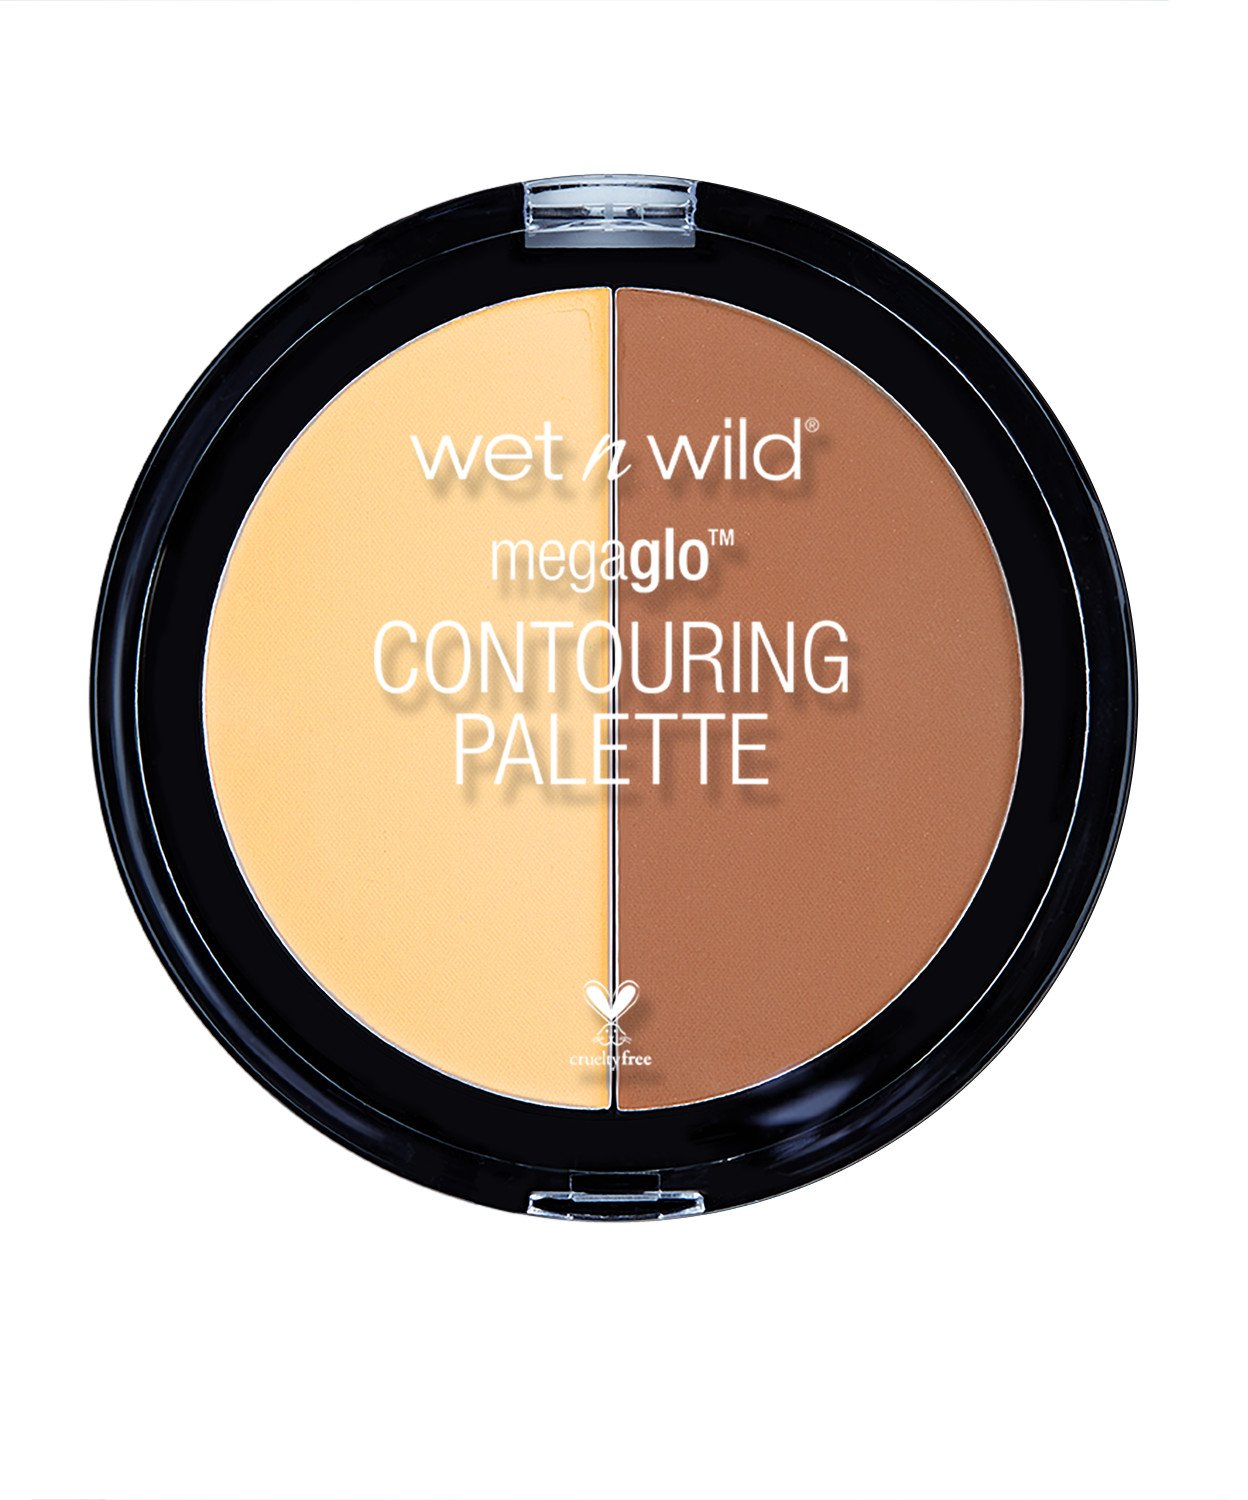 Wet n Wild 750A Megaglo contouring palette, 0.44 Ounce, Caramel Toffee Markwins Beauty Products